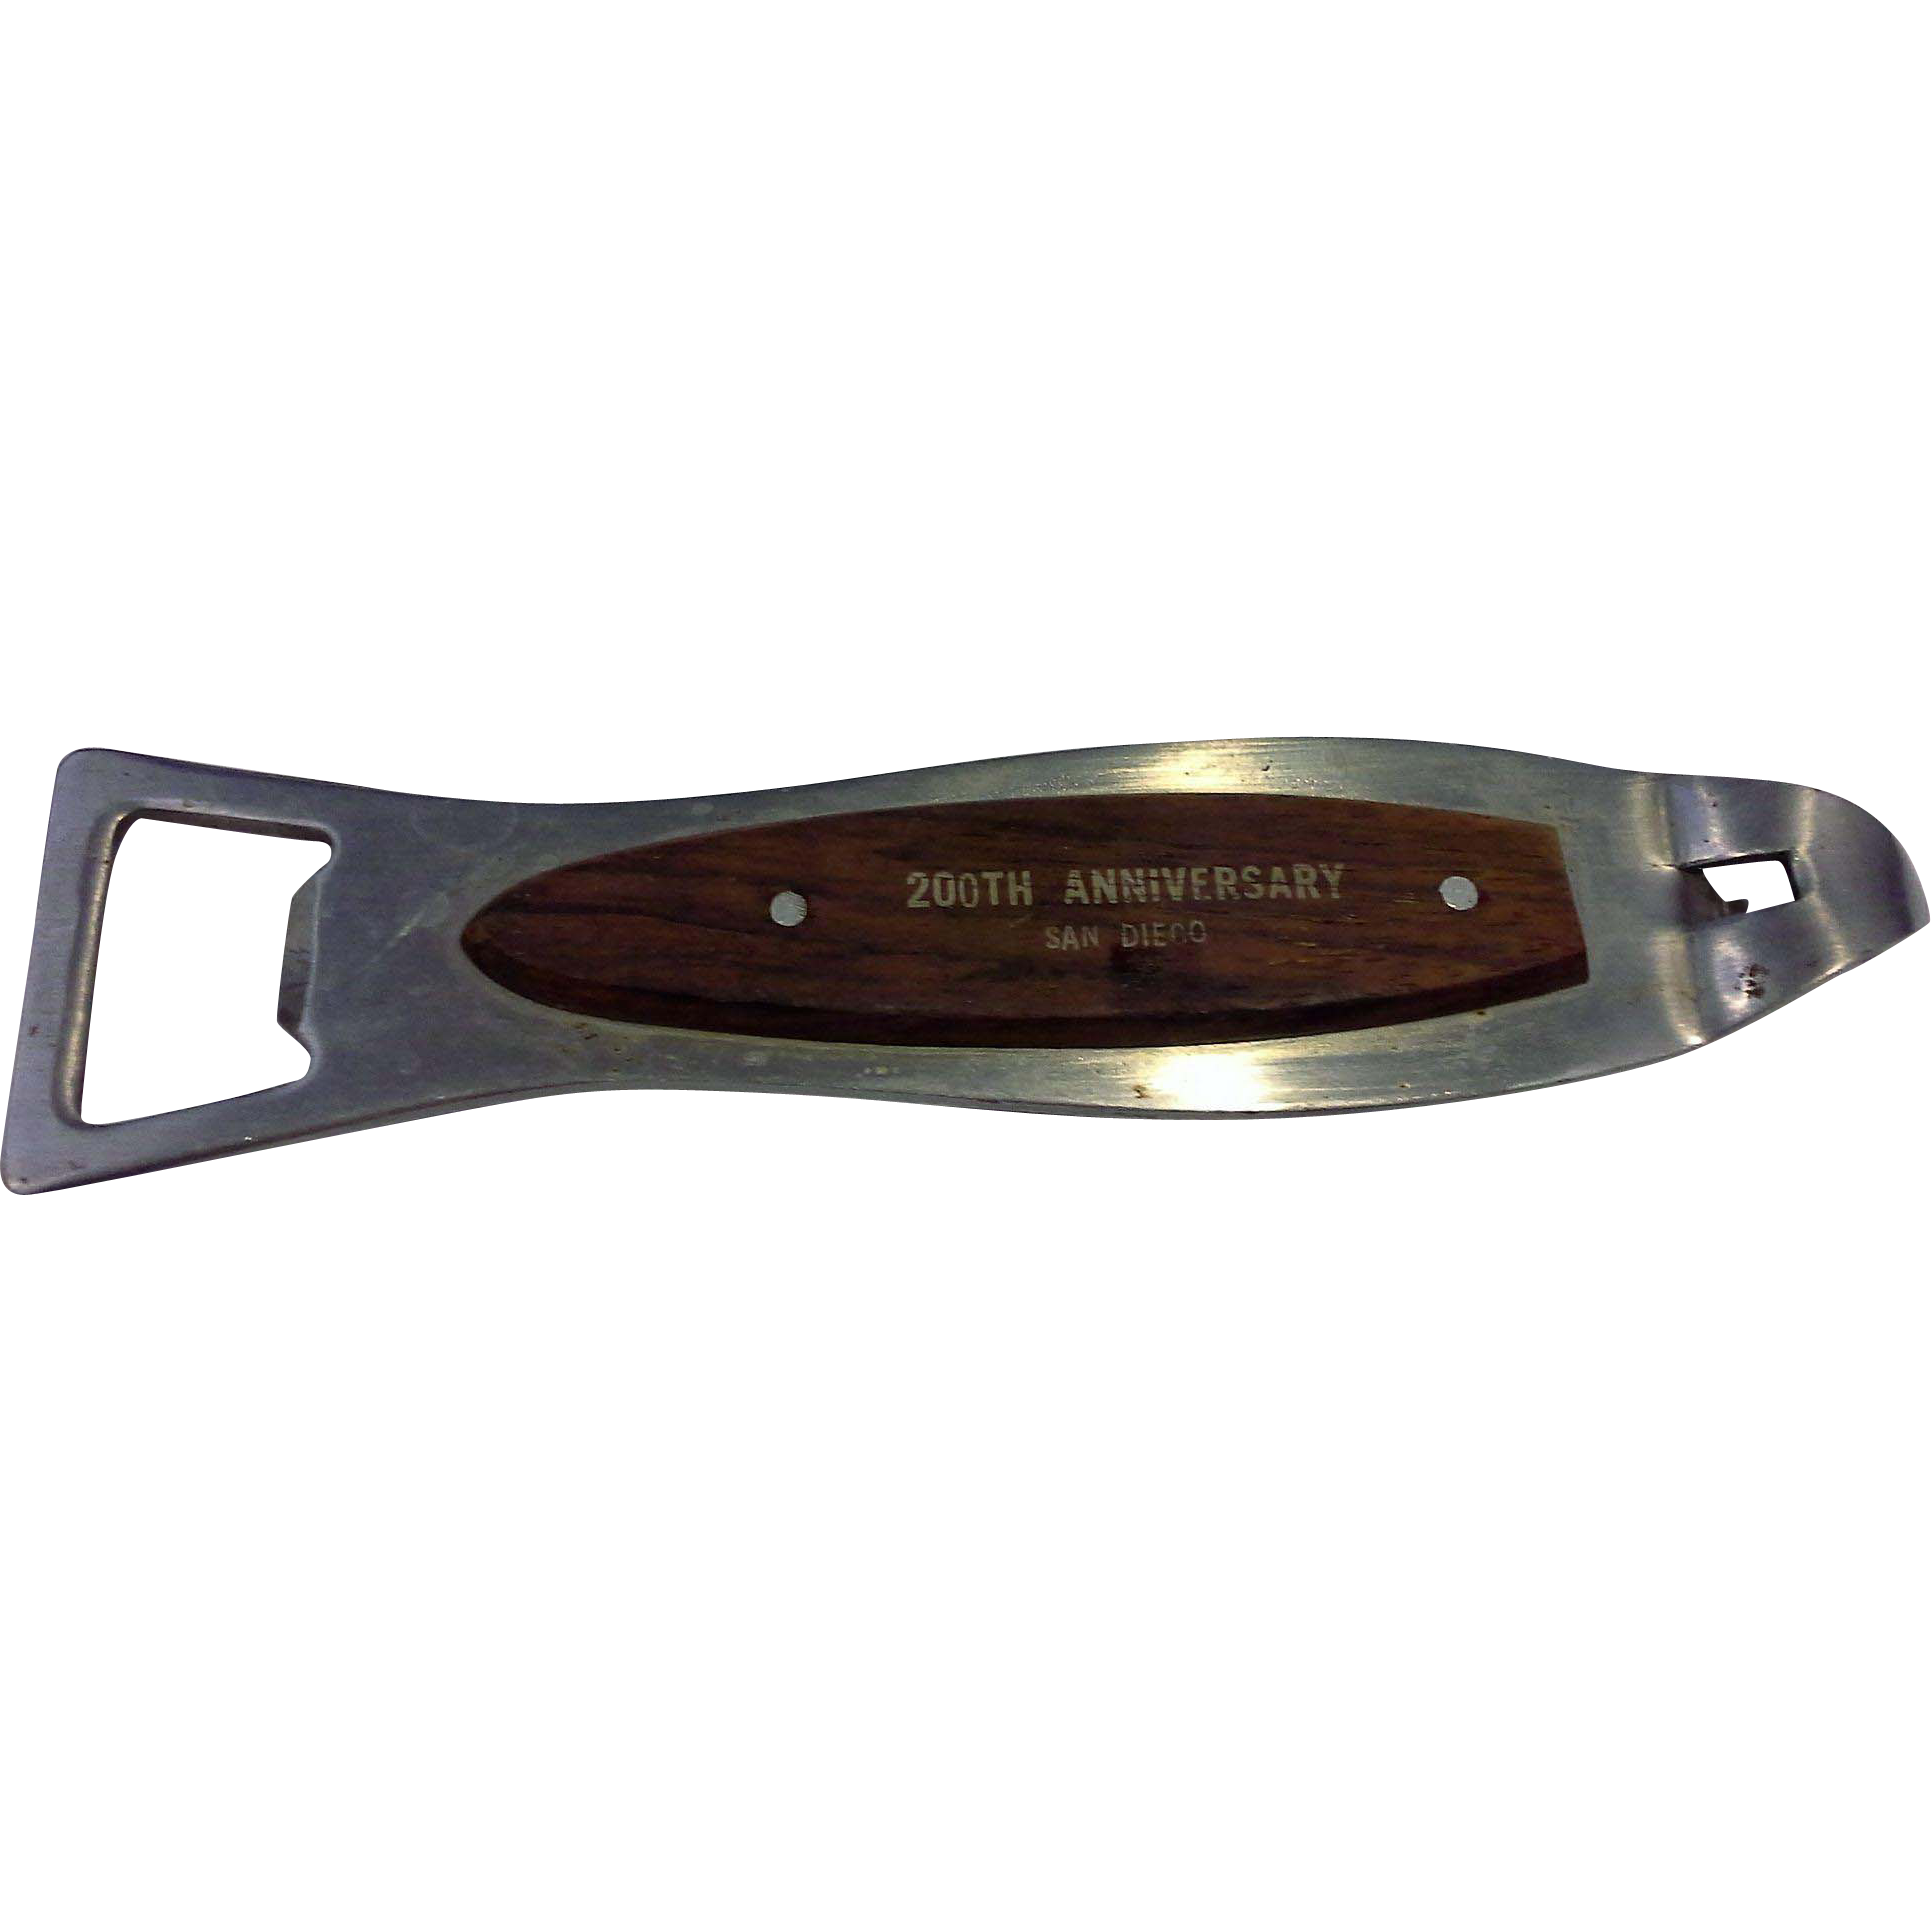 San Diego 200th Anniversary Souvenir Teak Wood Steel Fish Shaped Bottle Opener Japan 1969